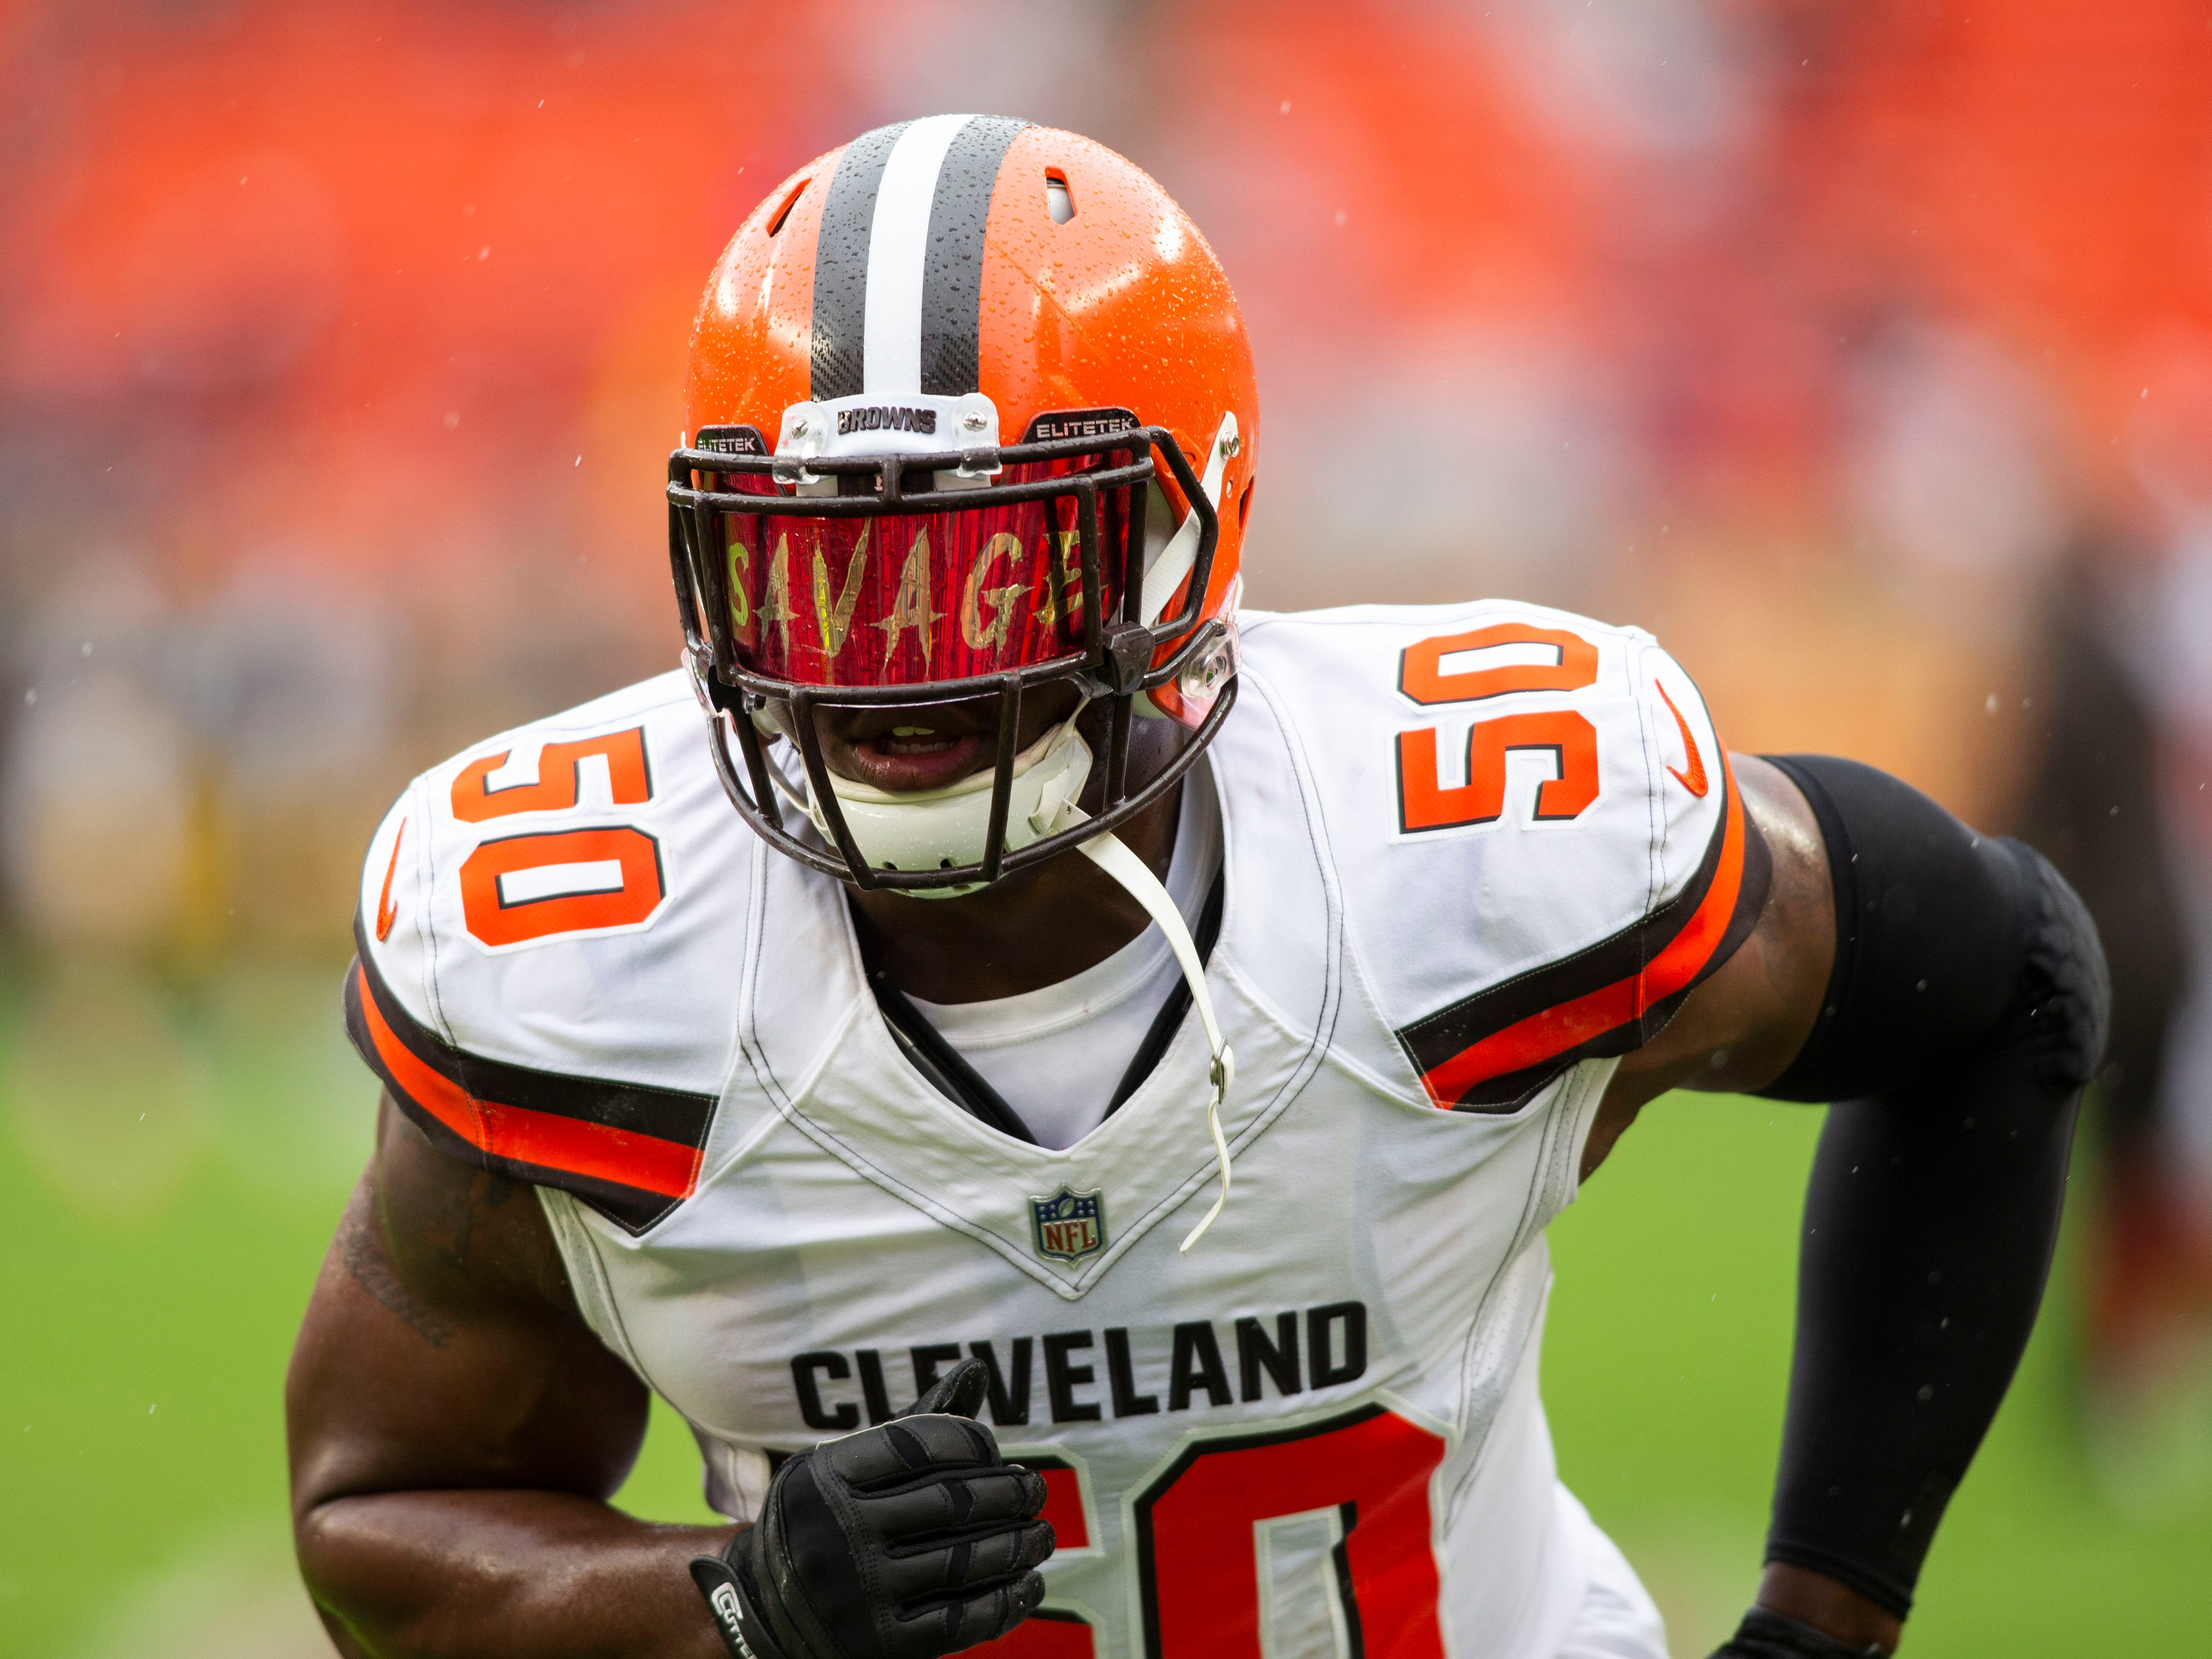 Cleveland Browns defensive end Chris Smith runs during warmups before the game against the Pittsburgh Steelers at FirstEnergy Stadium.